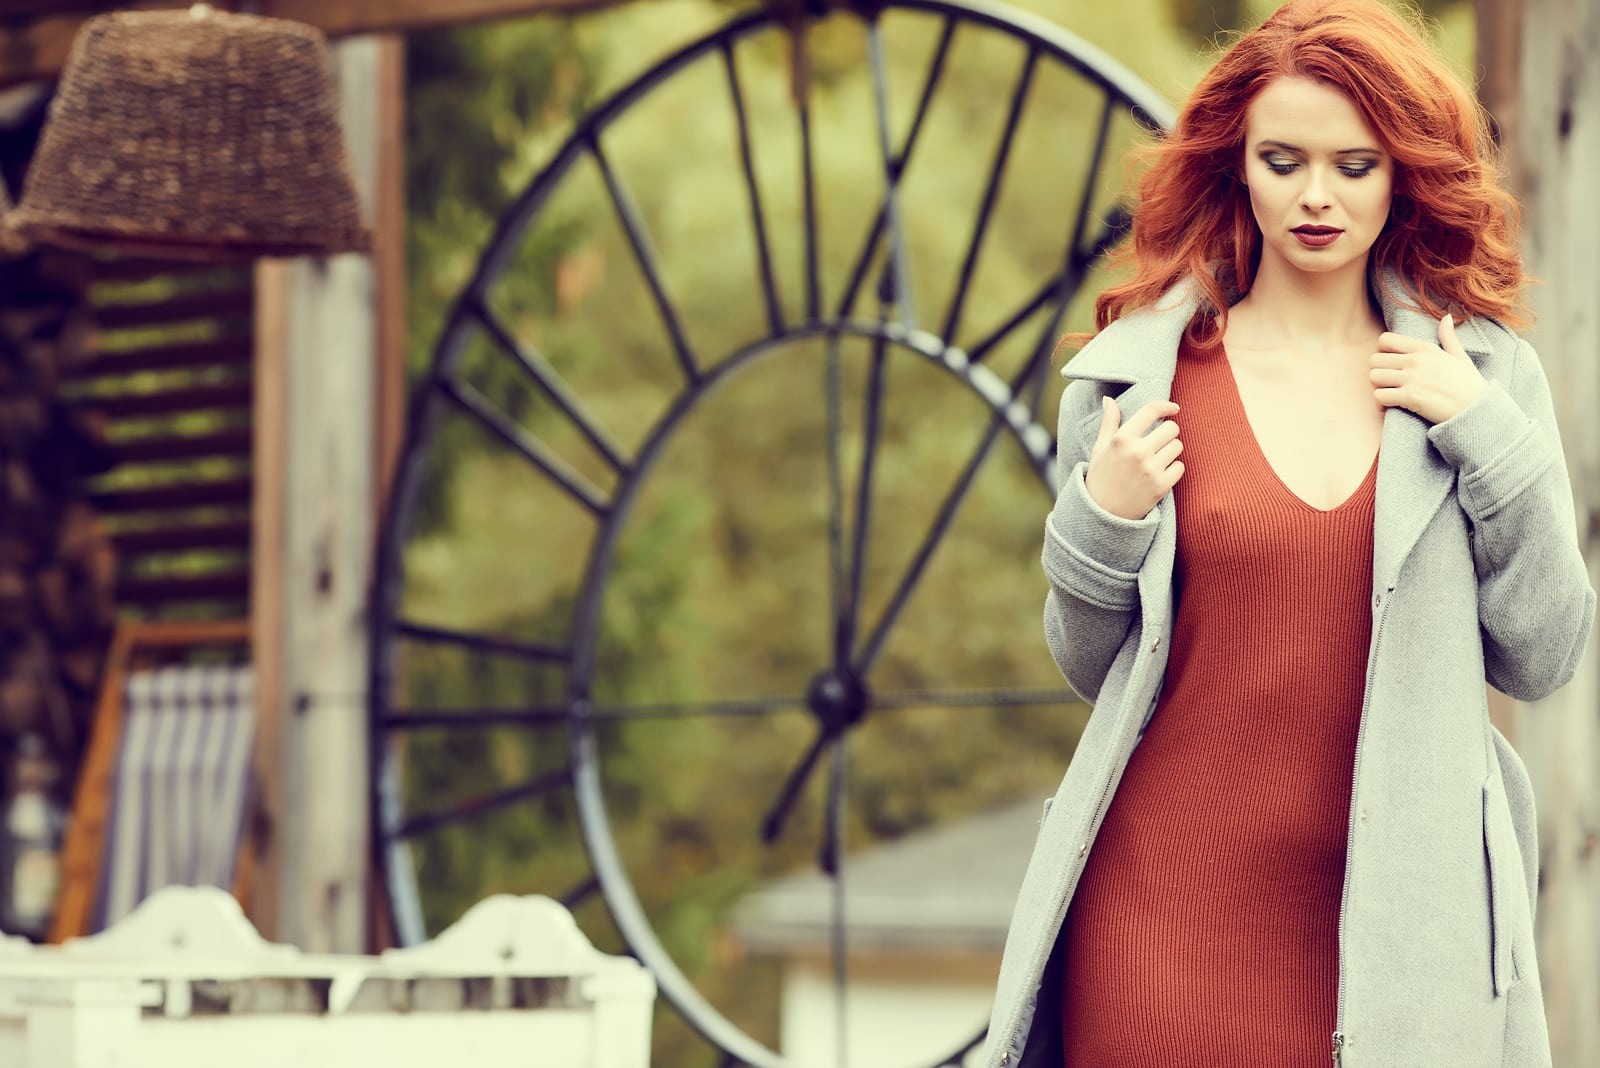 a beautiful red-haired woman in a burgundy dress and gray coat walks